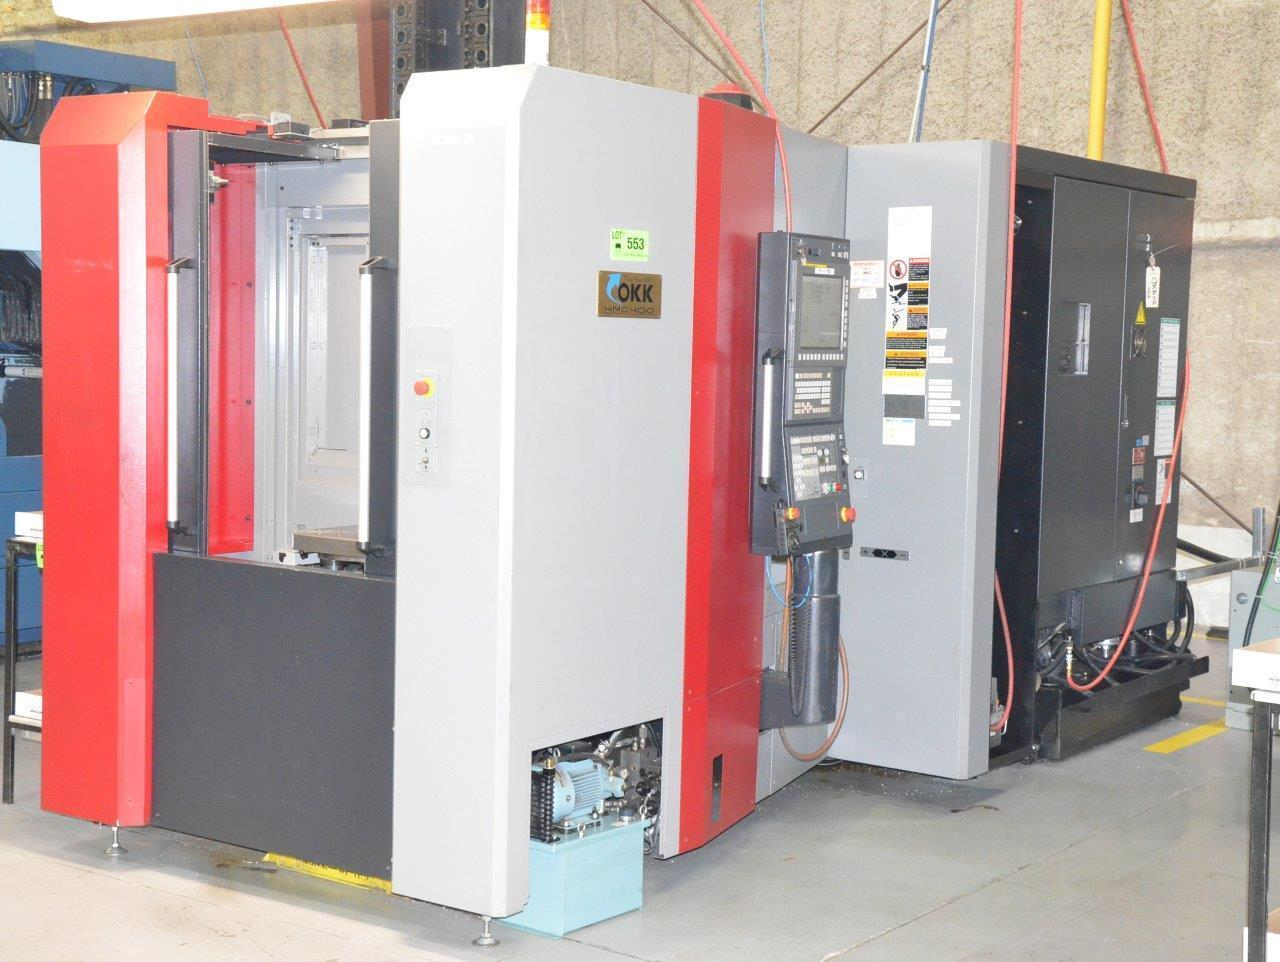 """OKK HMC400 CNC Horizontal Machining Center, Fanuc 31iB, 15.75"""" Pallets, 15K Spindle, 22""""/22""""/22"""" Travels, Big+ 40 Taper, Full 4th Axis, ATLM, Low Hours, 2015 (Installed 2017)"""